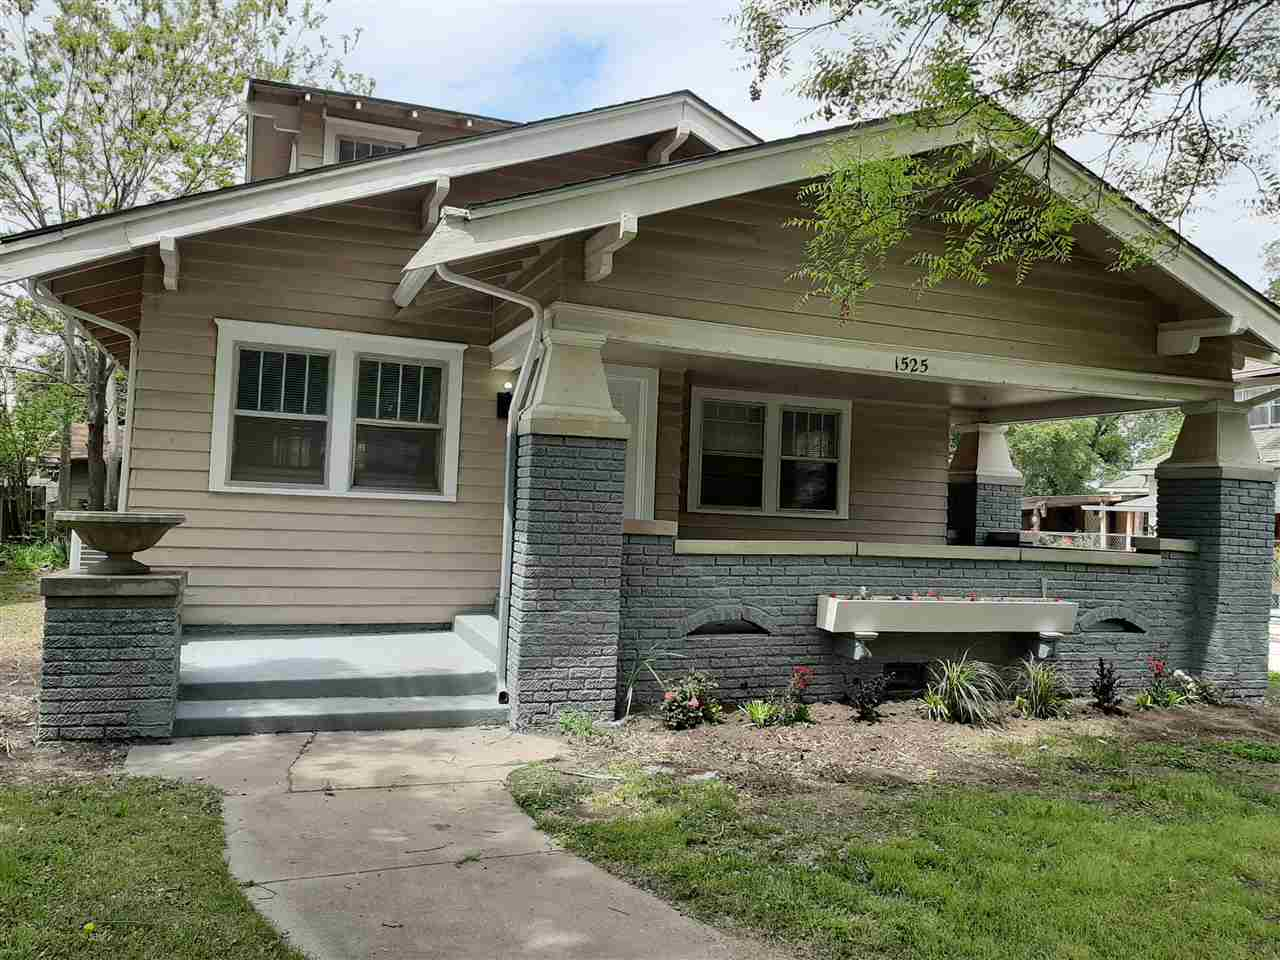 Darling bungalow in corner lot, the house has been recently totally upgrade fresh painted inside, ne